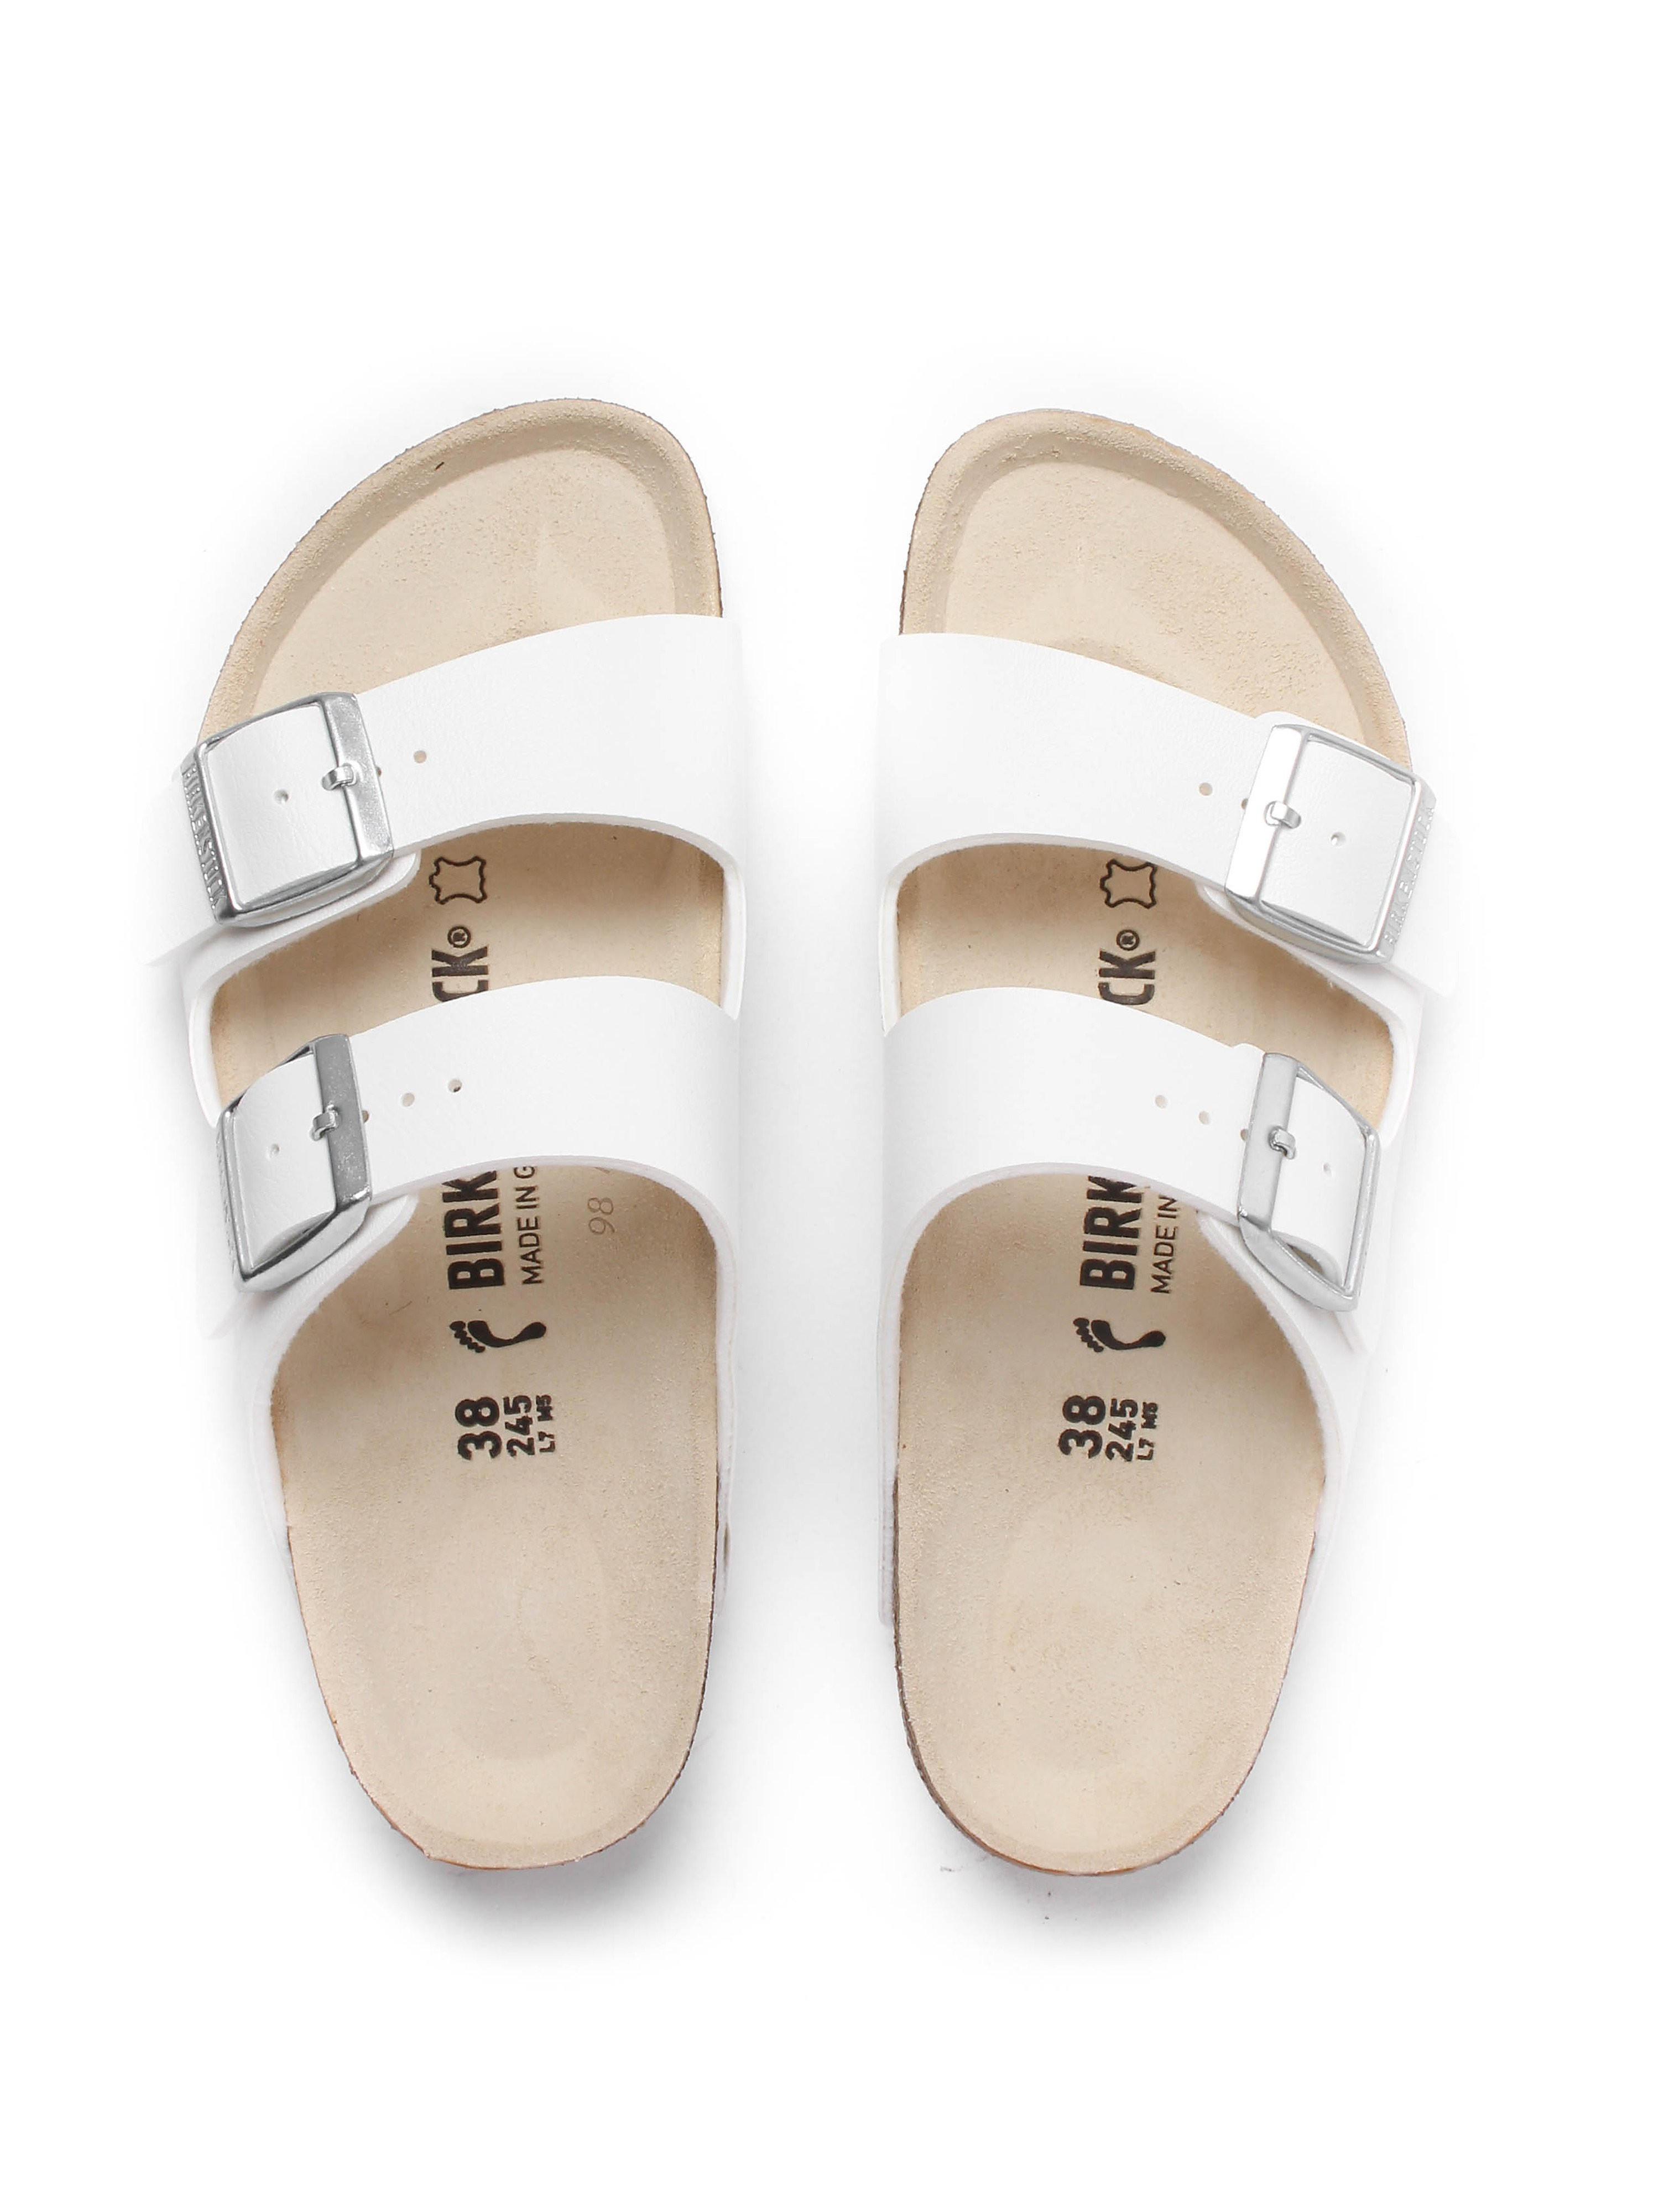 Birkenstock Women's Arizona Double Strap Narrow Fit Sandals - White